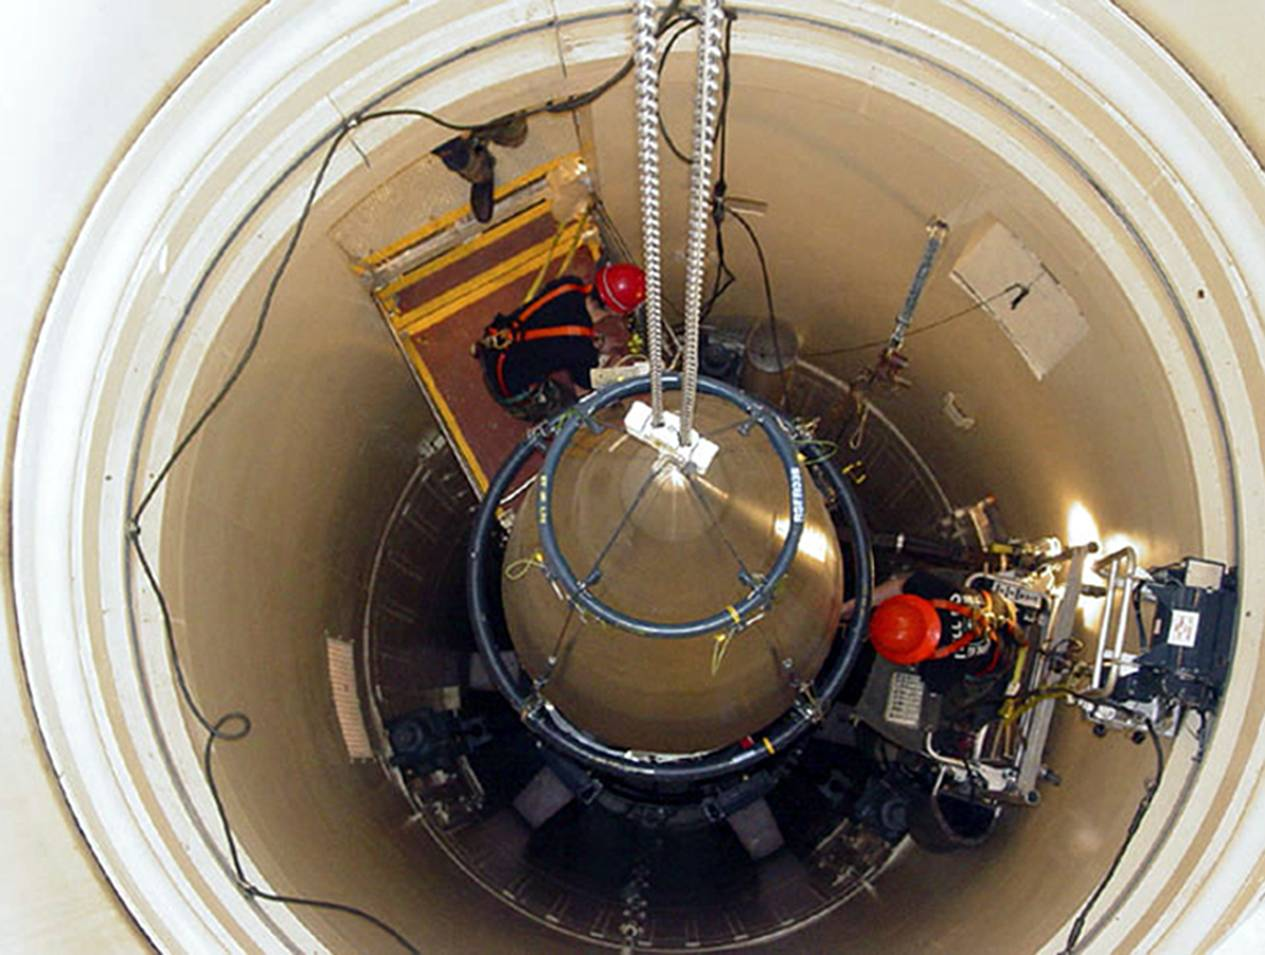 In this image released by the U.S. Air Force, a Malmstrom Air Force Base missile maintenance team removes the upper section of an ICBM at a Montana missile site.